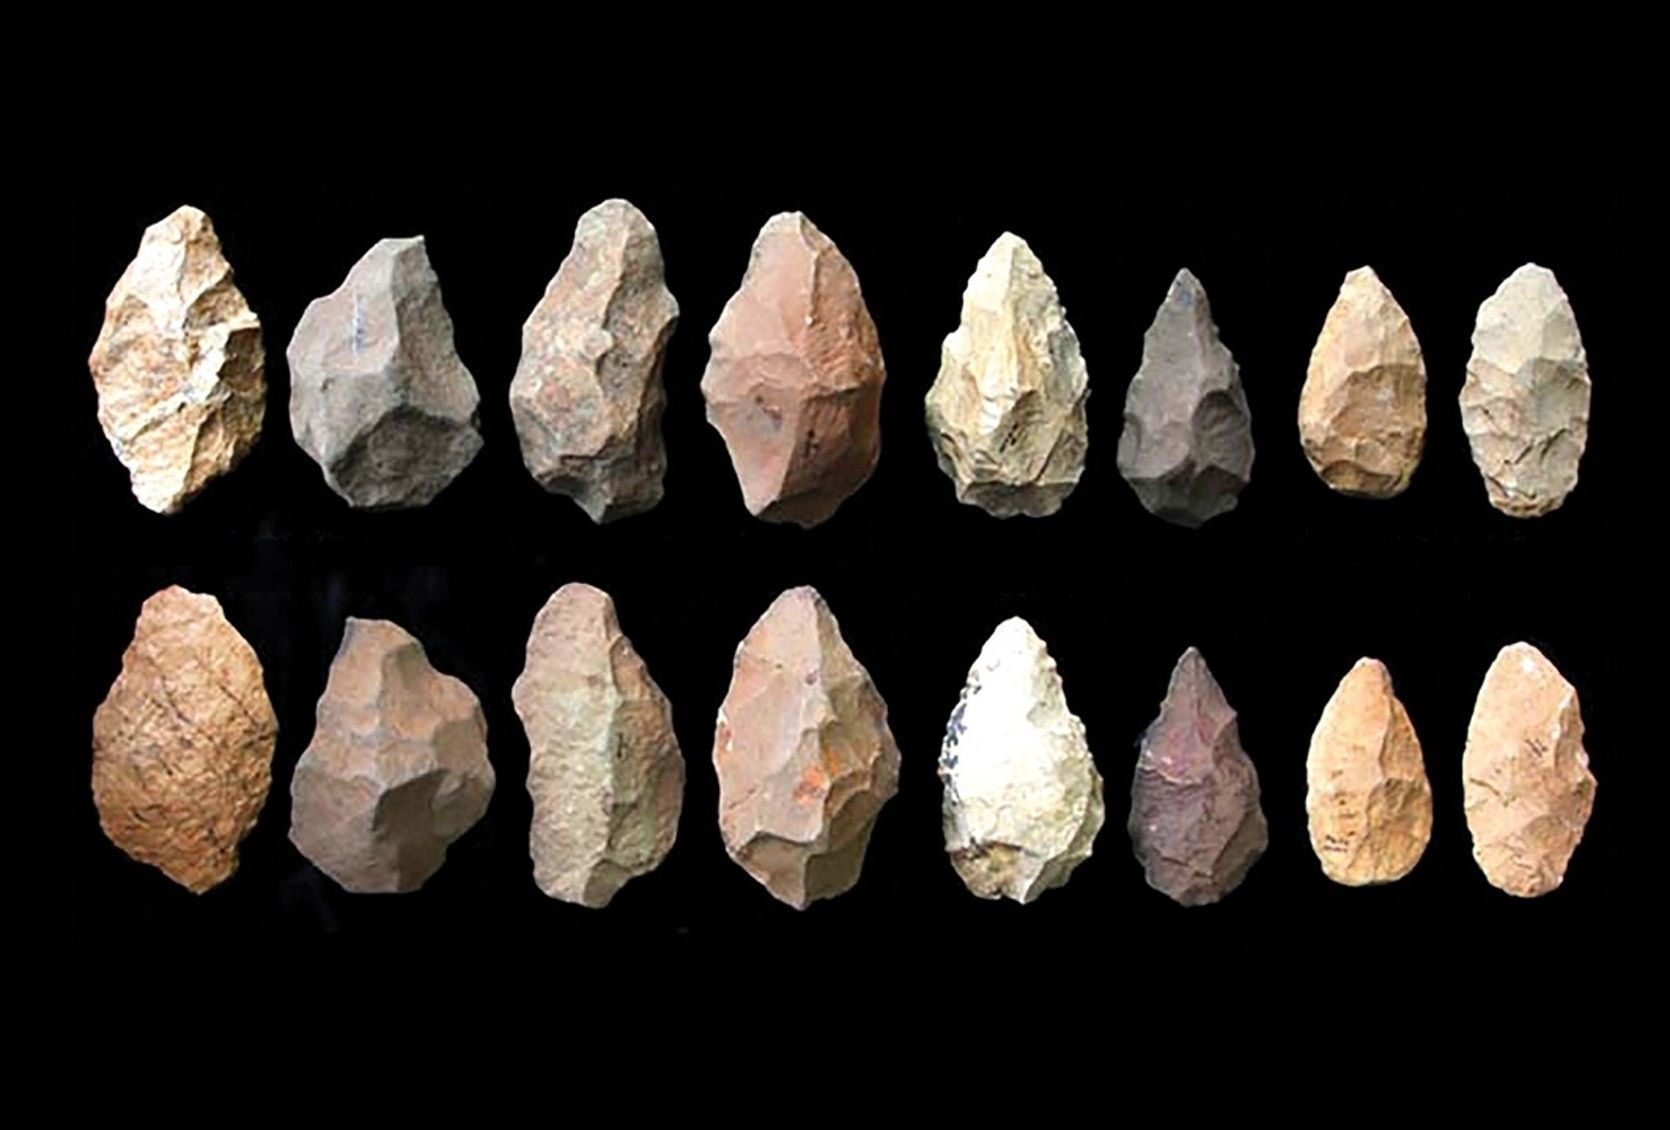 Dating native american stone tools